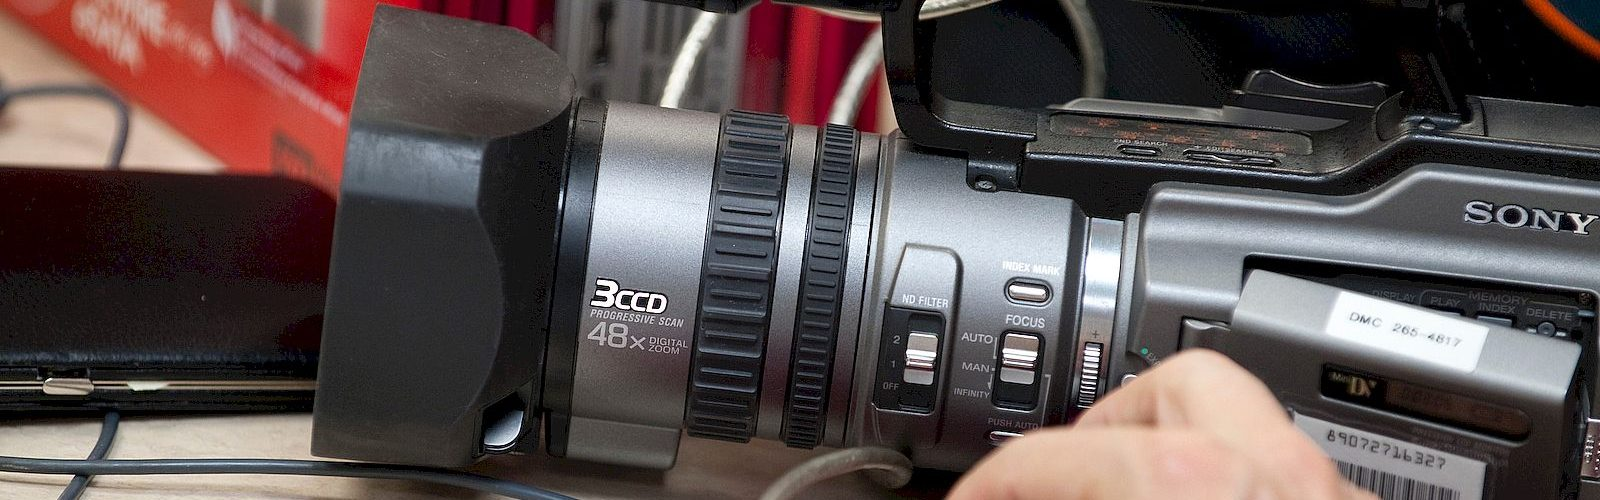 A picture of a video camera on a desk.